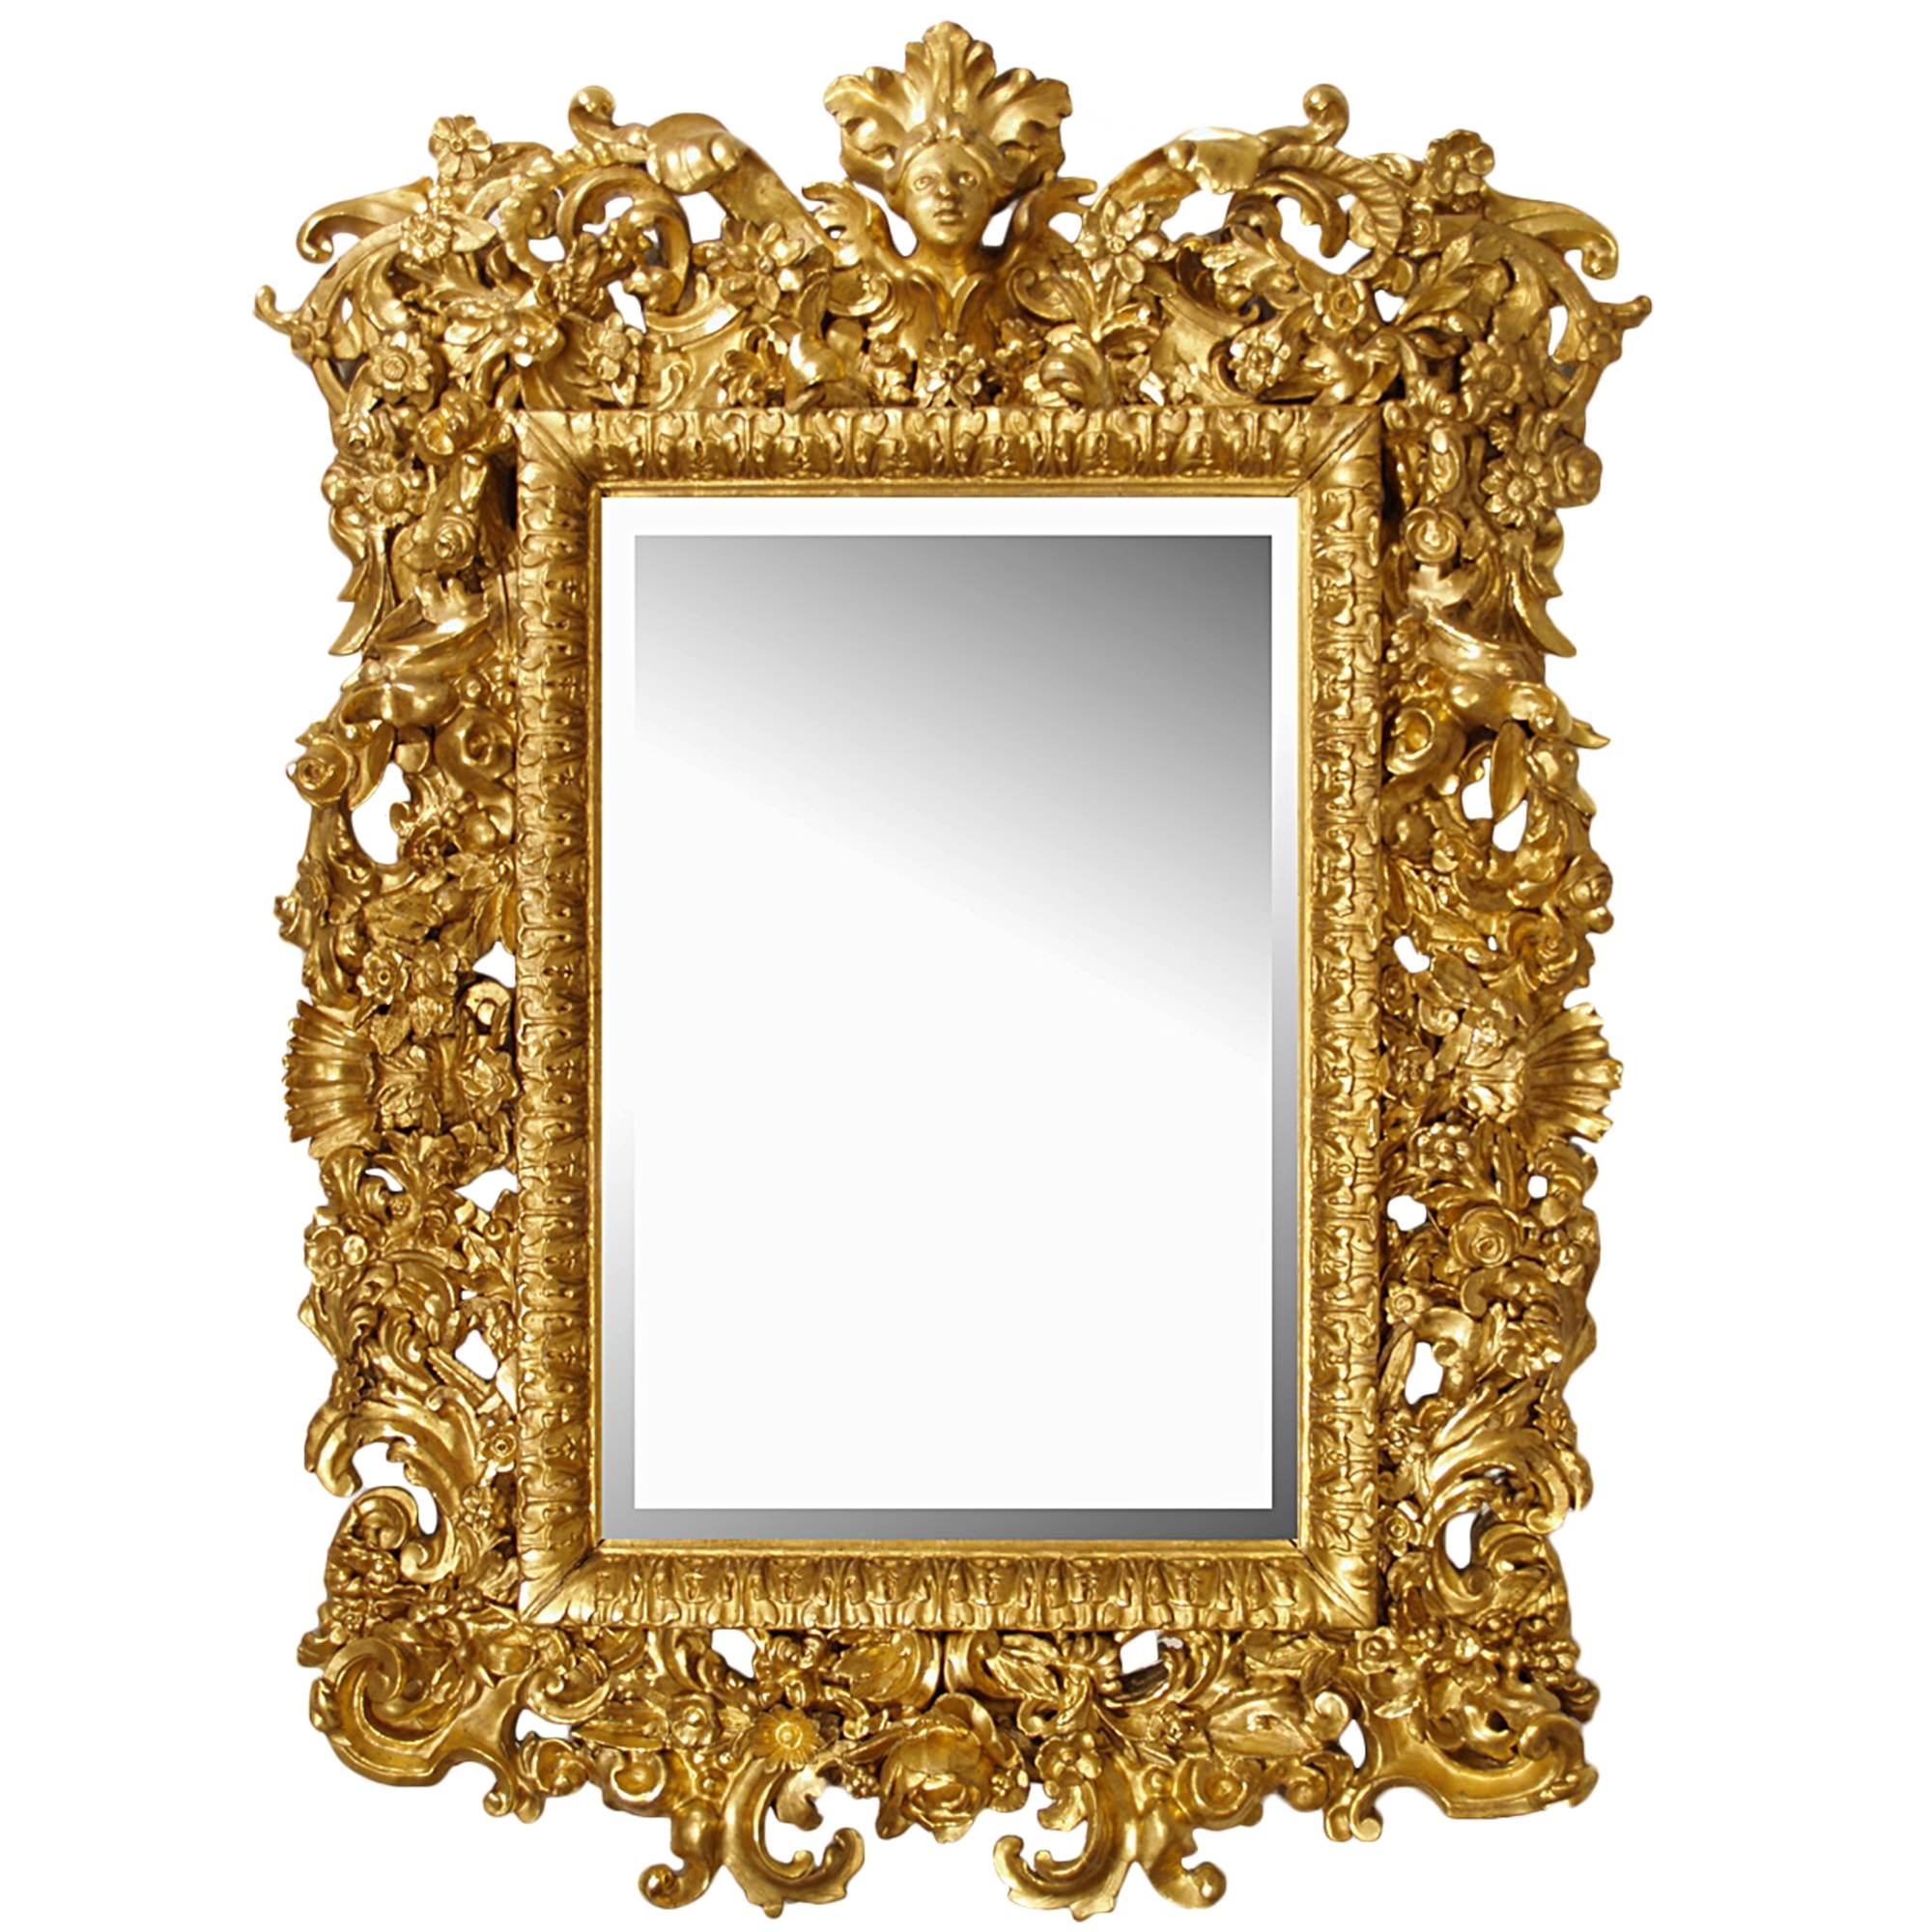 Bathroom: Astounding Baroque Mirror With Unique Frame For Bathroom inside Baroque White Mirrors (Image 10 of 25)